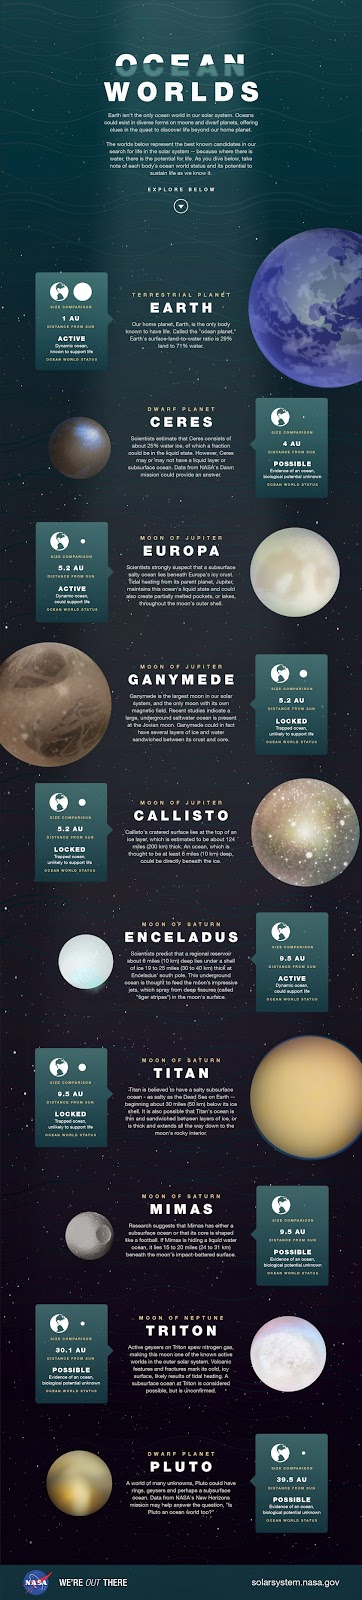 Earth isn't the only ocean world in our solar system. Oceans could exist in diverse forms on moons and dwarf planets, offering clues in the quest to discover life beyond our home planet. This illustration depicts the best known candidates in our search for life in the solar system. Image Credit: NASA/JPL-Caltech